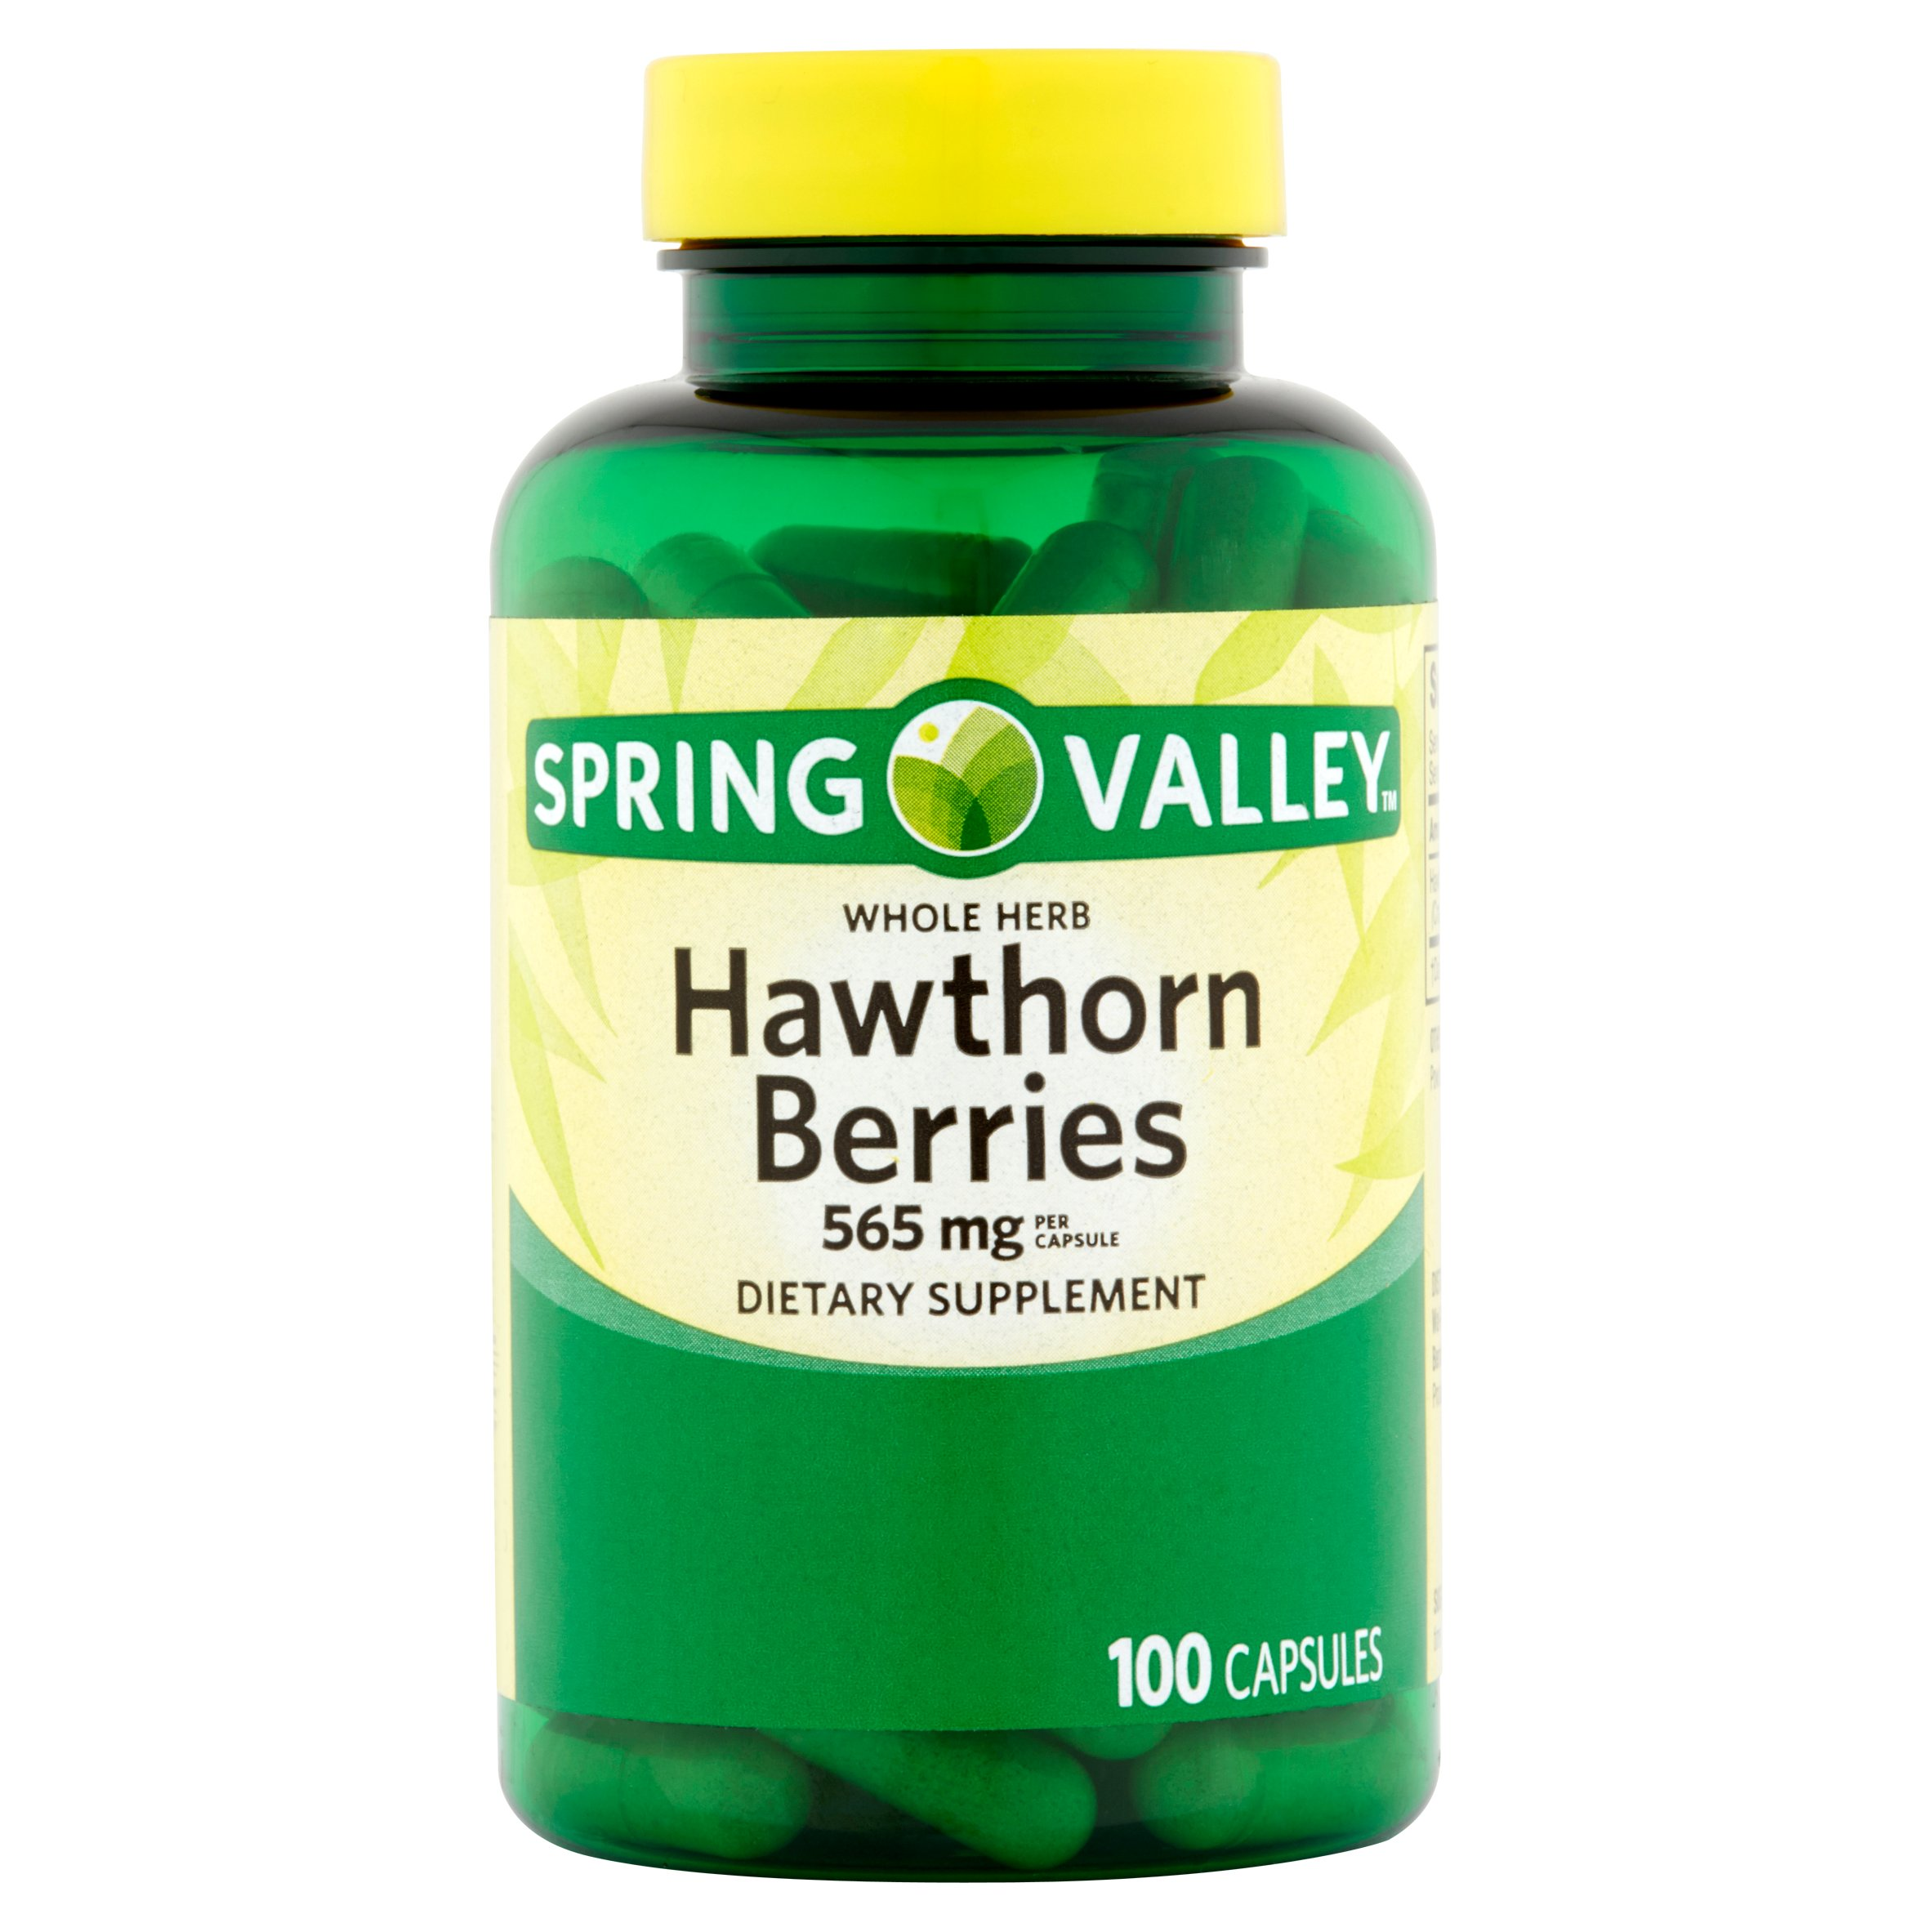 Spring Valley Whole Herb Hawthorn Berries Capsules, 565 mg, 100 Ct